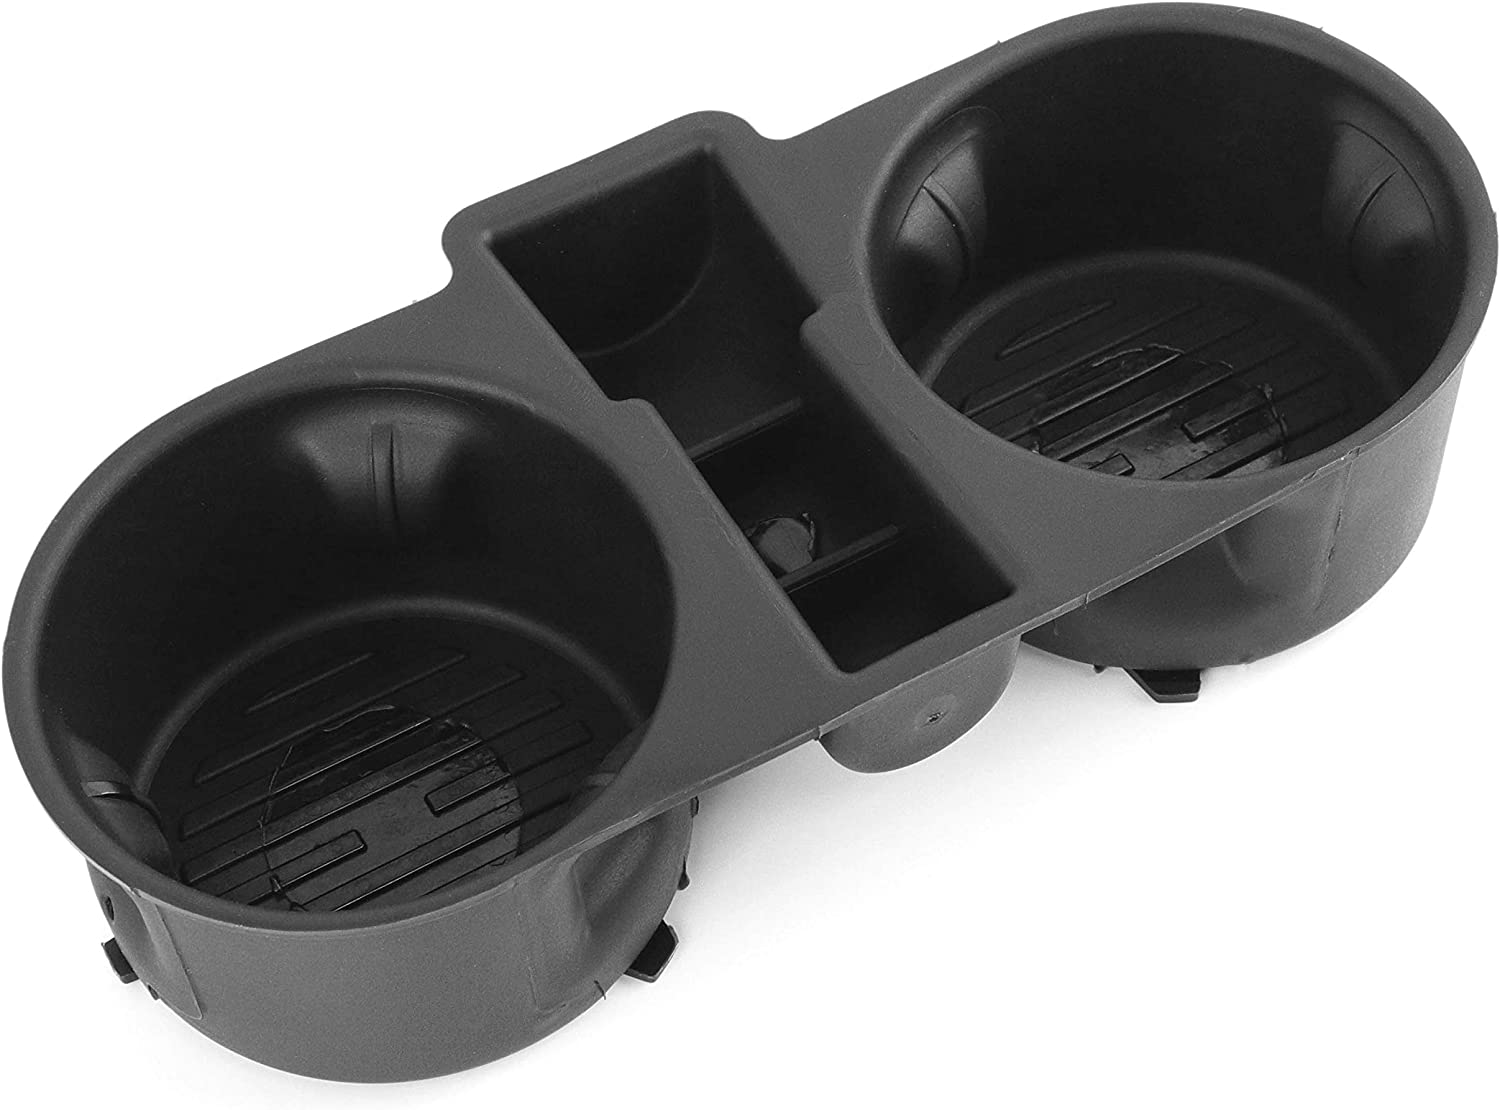 Red Hound Auto Cup Holder Insert Holds 2 Cups Compatible with Ford F-150 2015-2020 fits Front Center Console Floor (fold Down Console only) Rubber Black Liner Beverage Holder